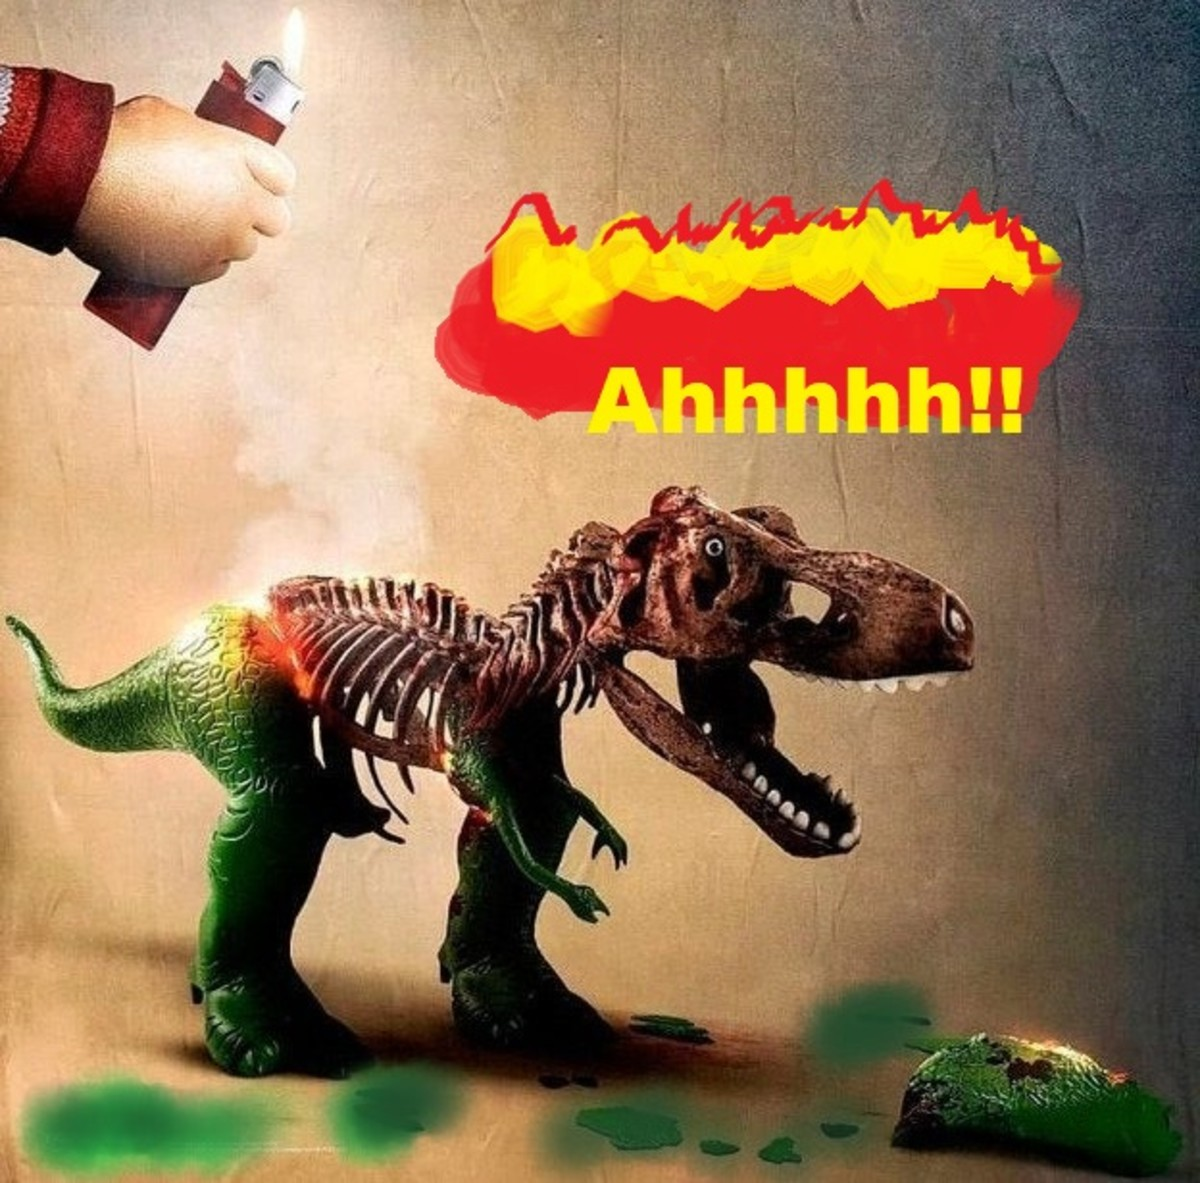 Buddi seems to be melting Toy Story's T-Rex. I remember those wax and plastic dinosaurs - I had a bunch!